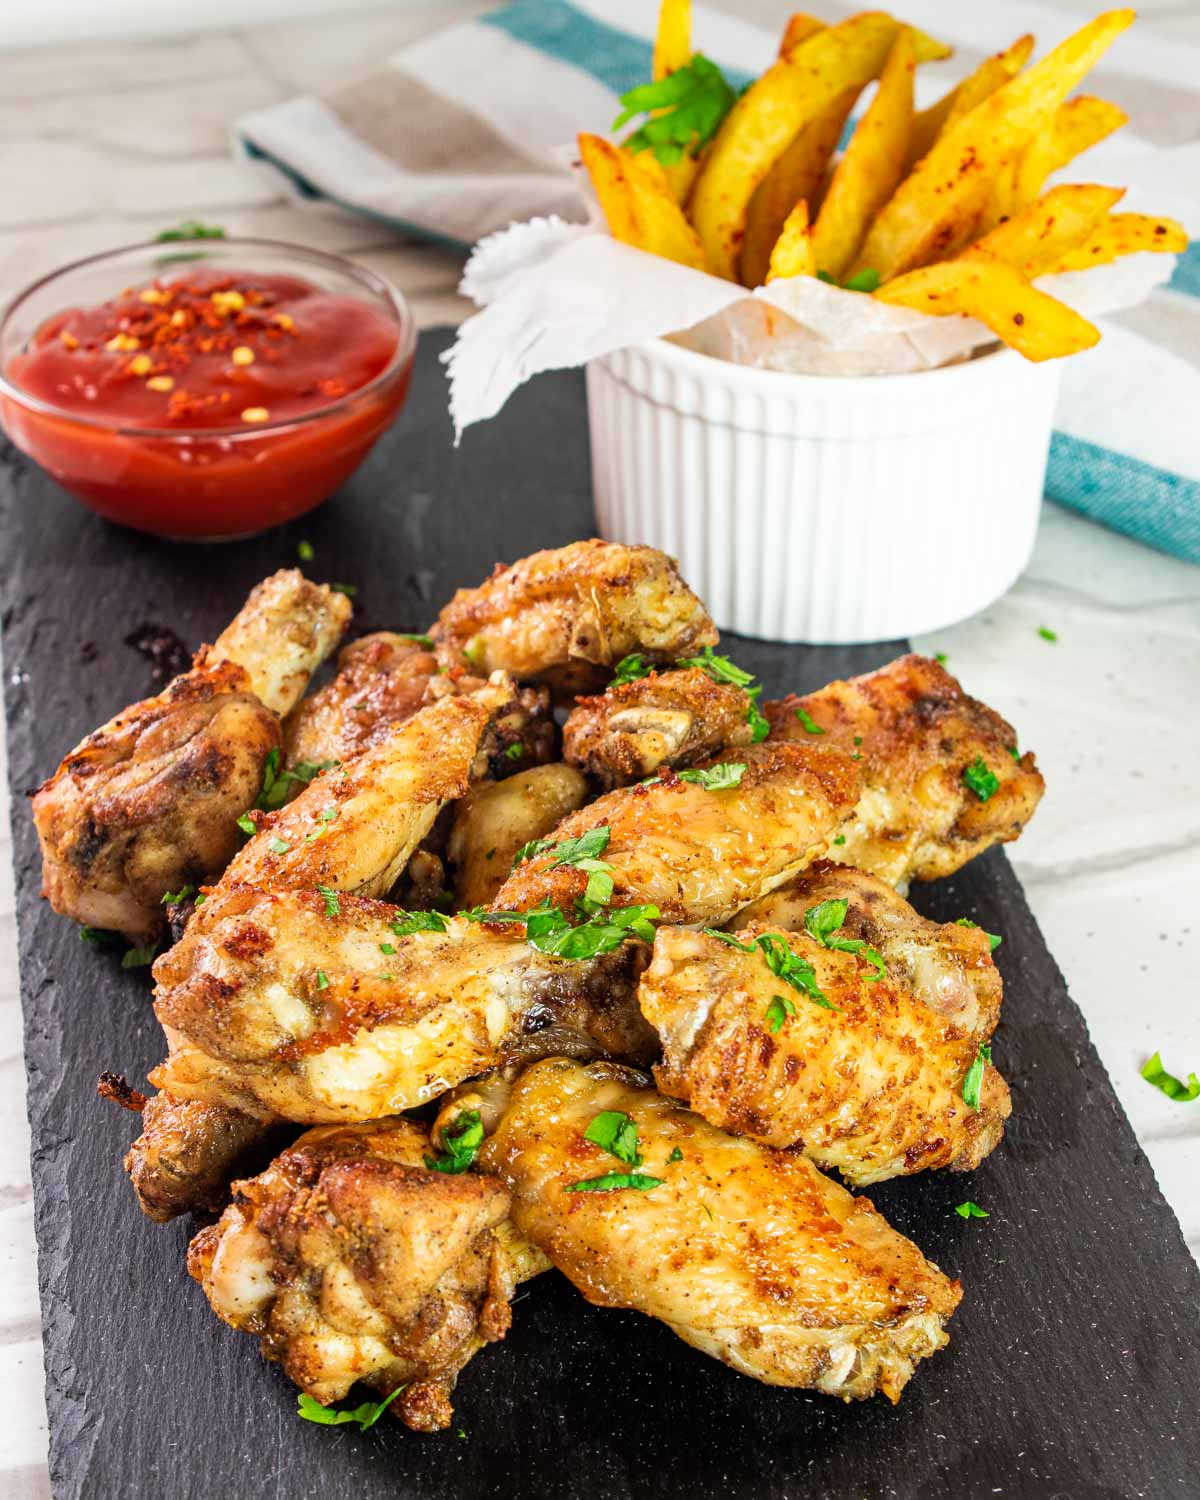 chicken wings on a black plate with french fries in the background.